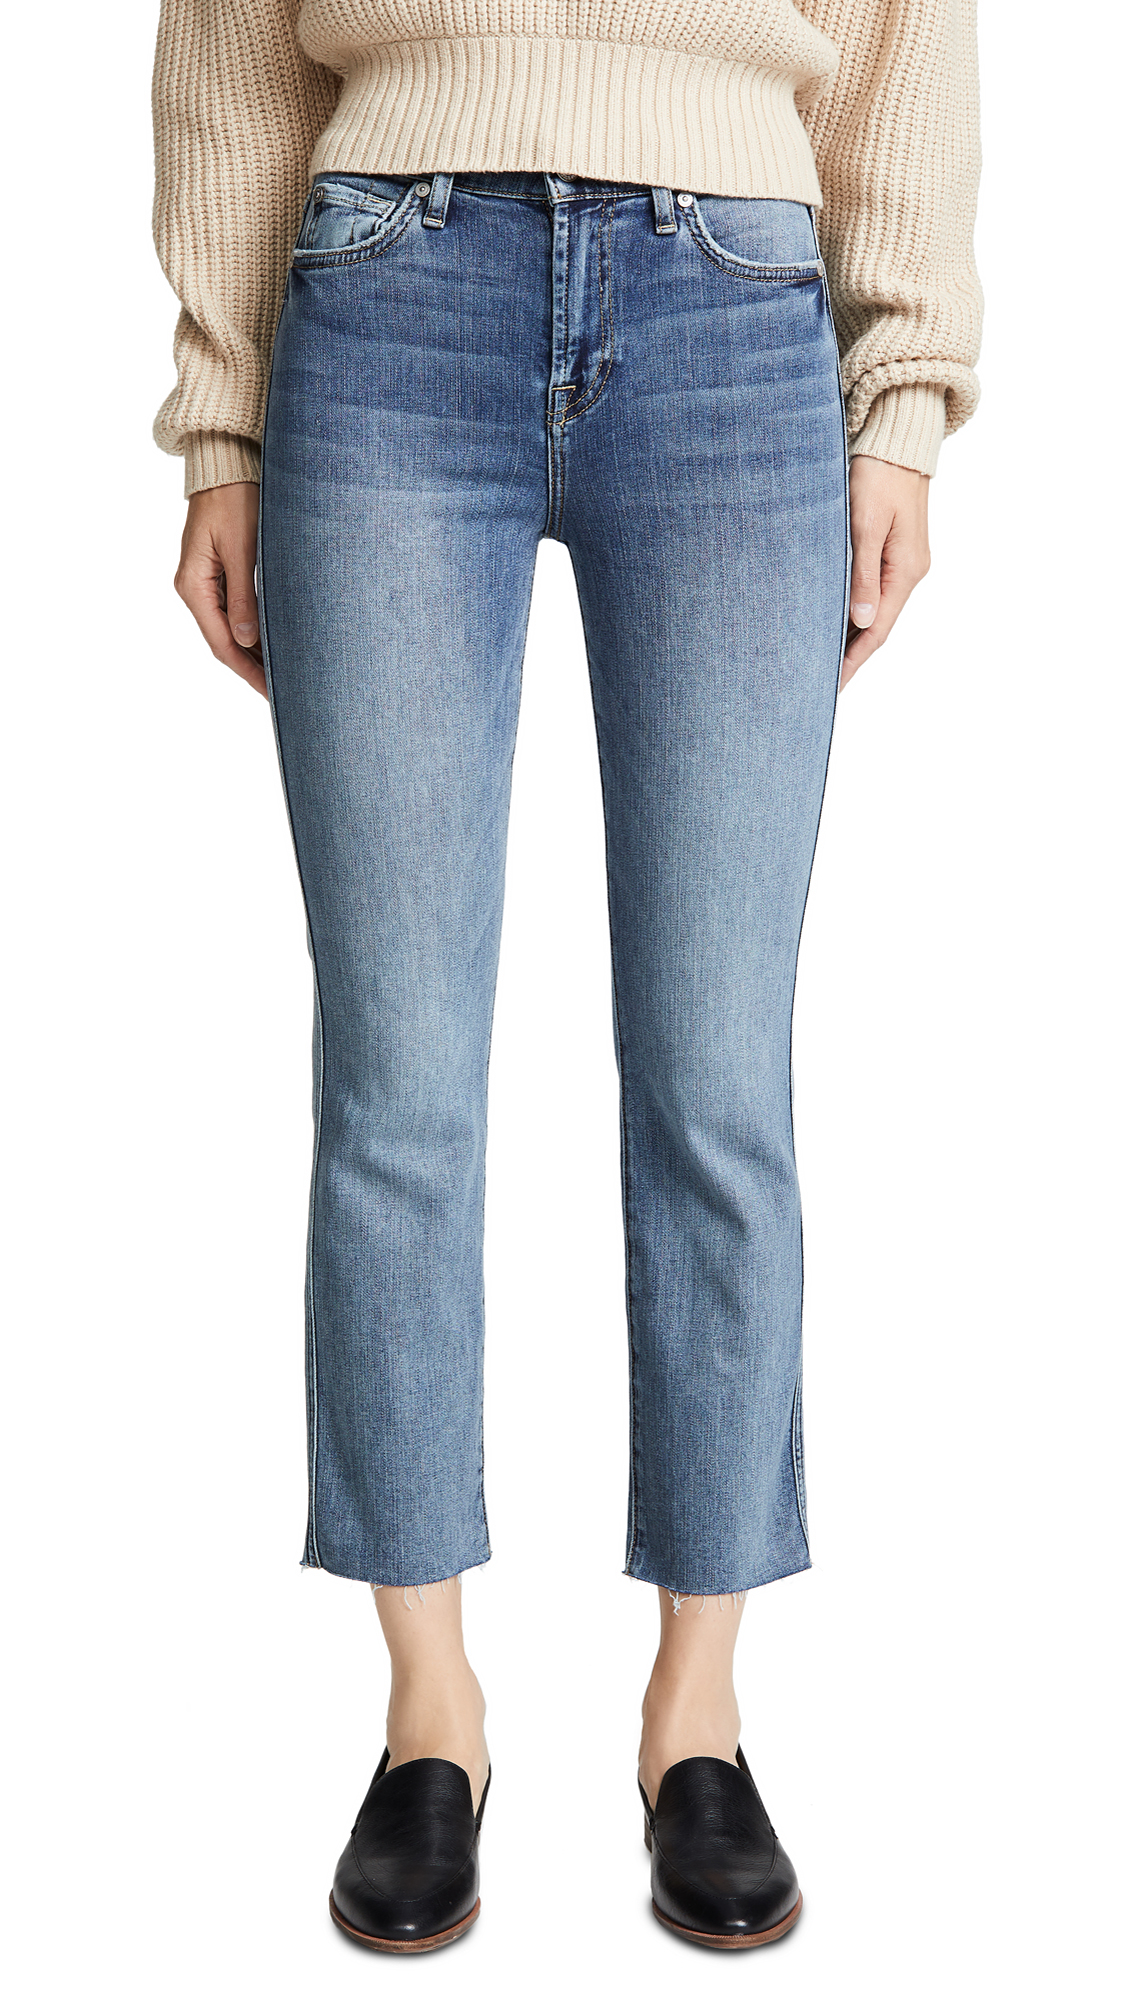 7 For All Mankind Edie B(air) Authentic Raw Hem Jeans In B(Air) Authentic Fortune